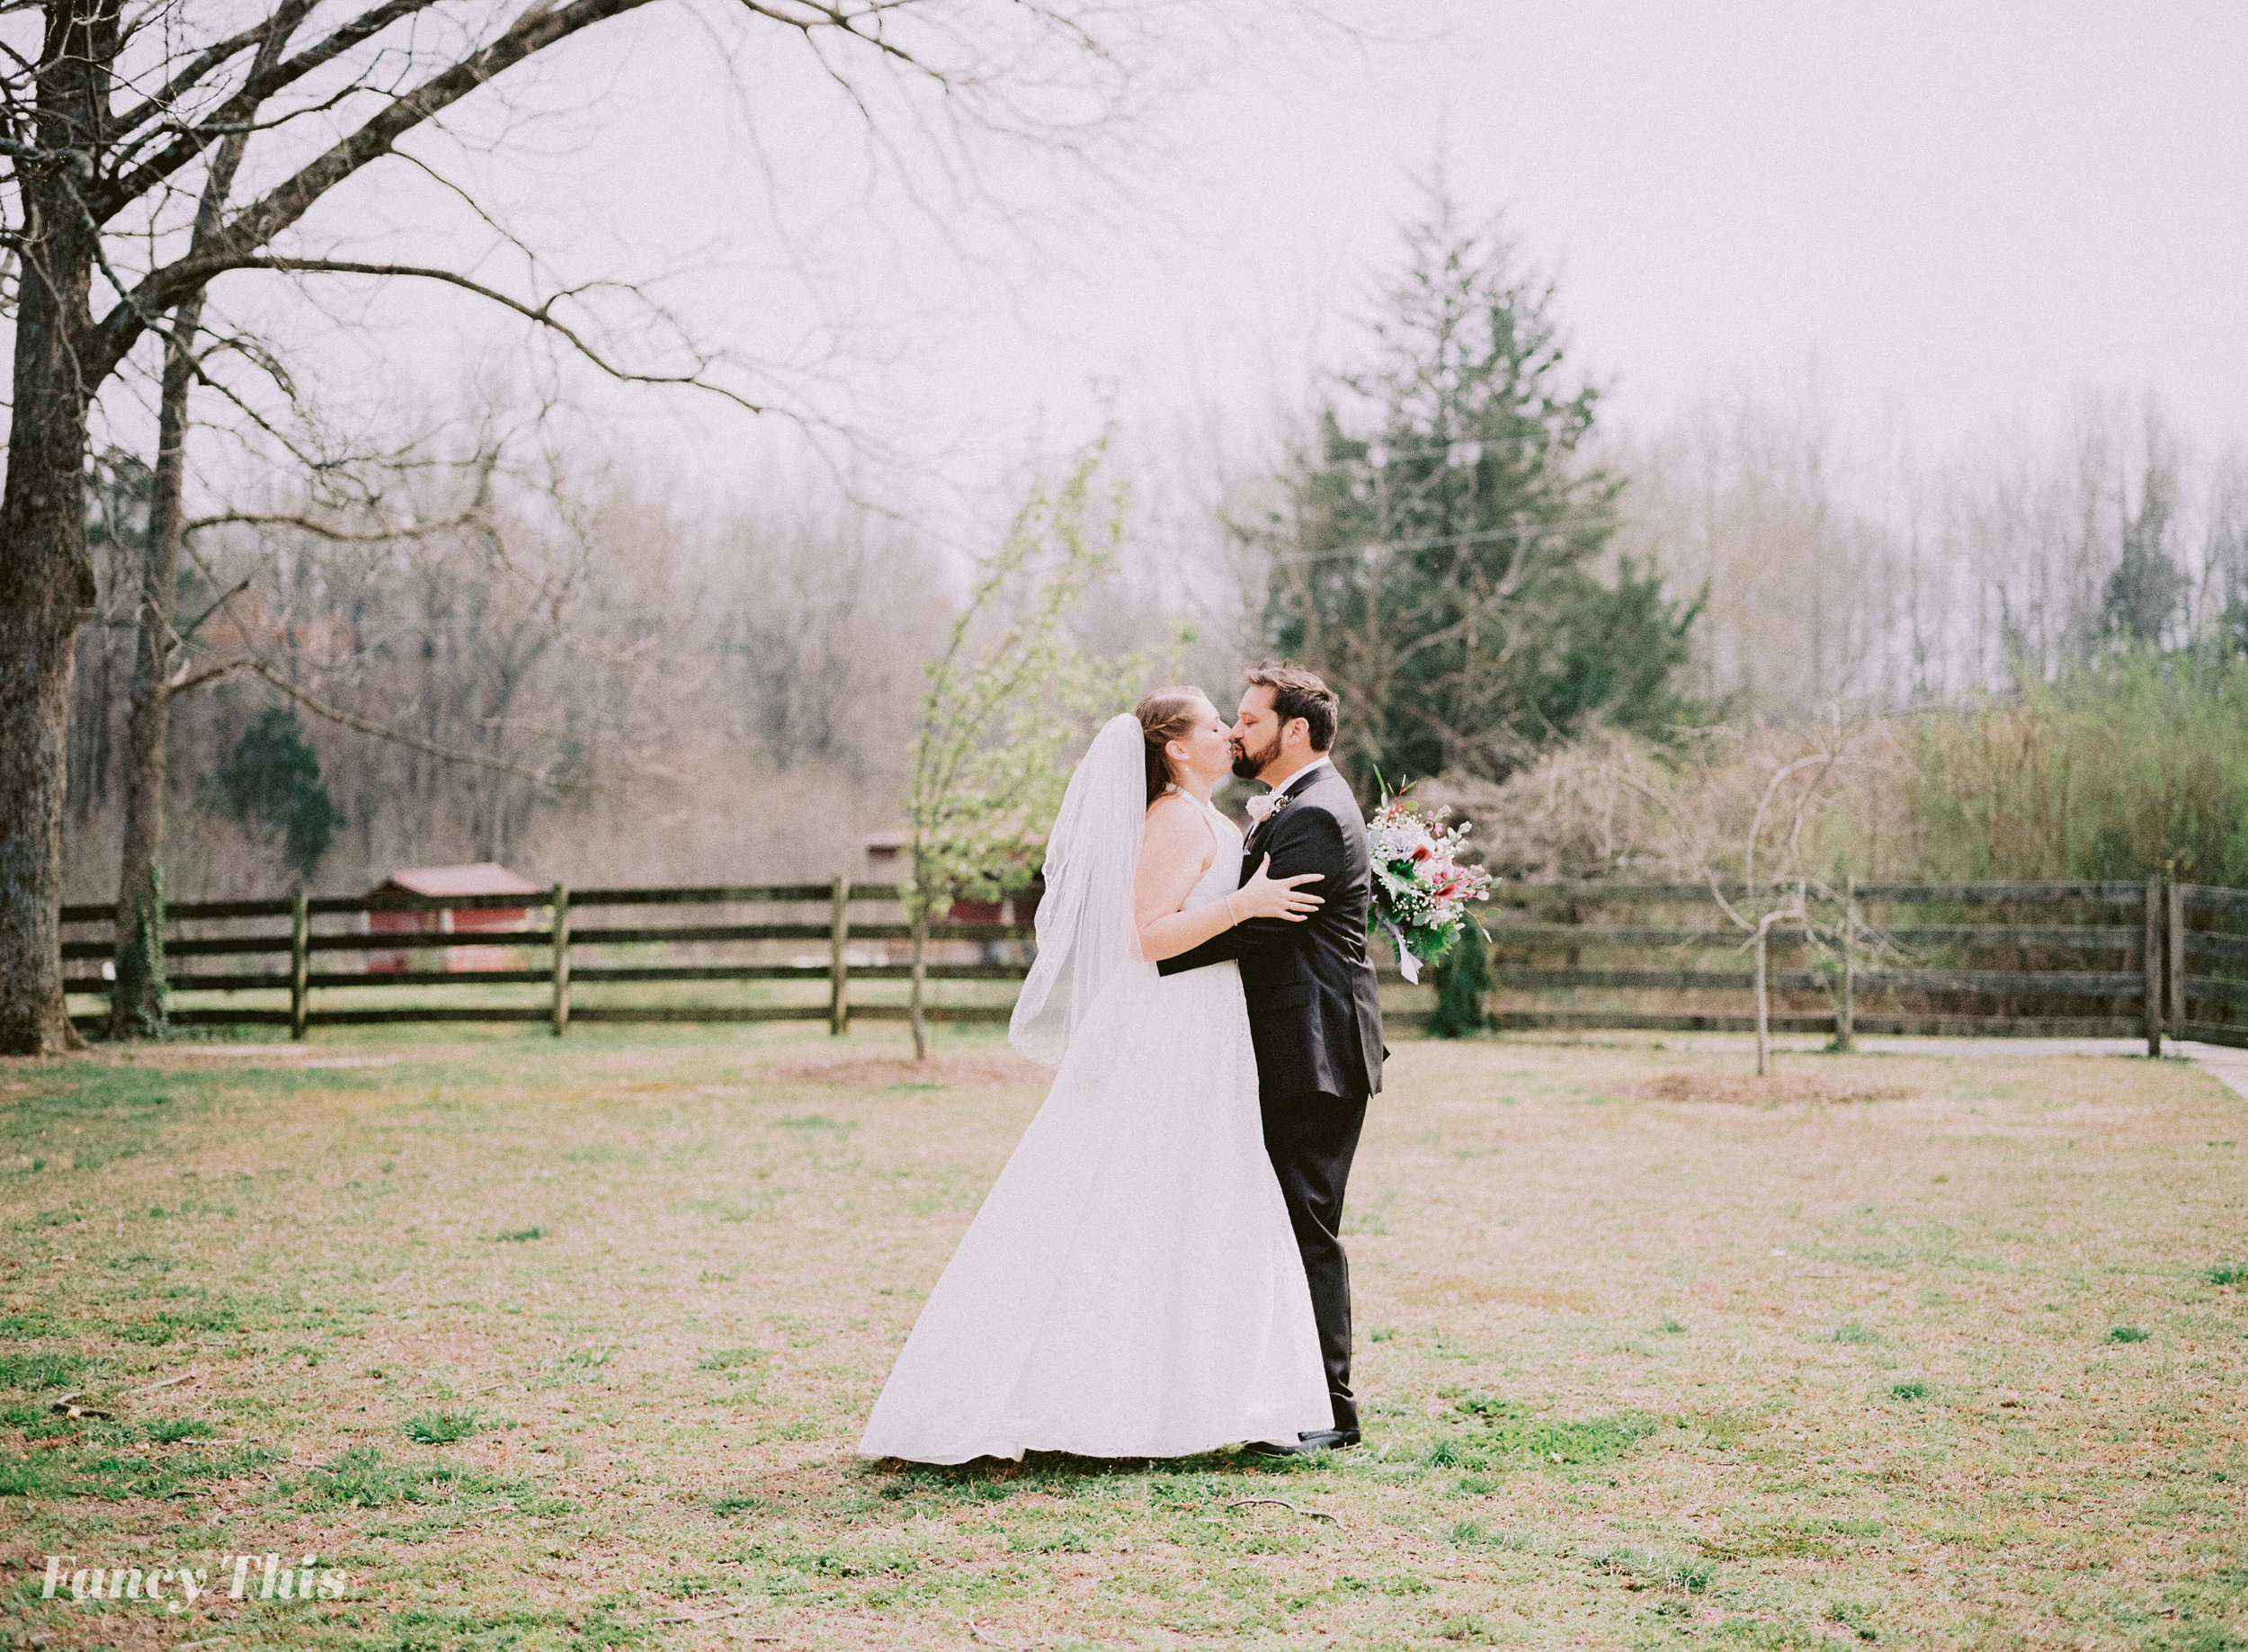 ironhorsewedding_cedargrovewedding_-199.jpg